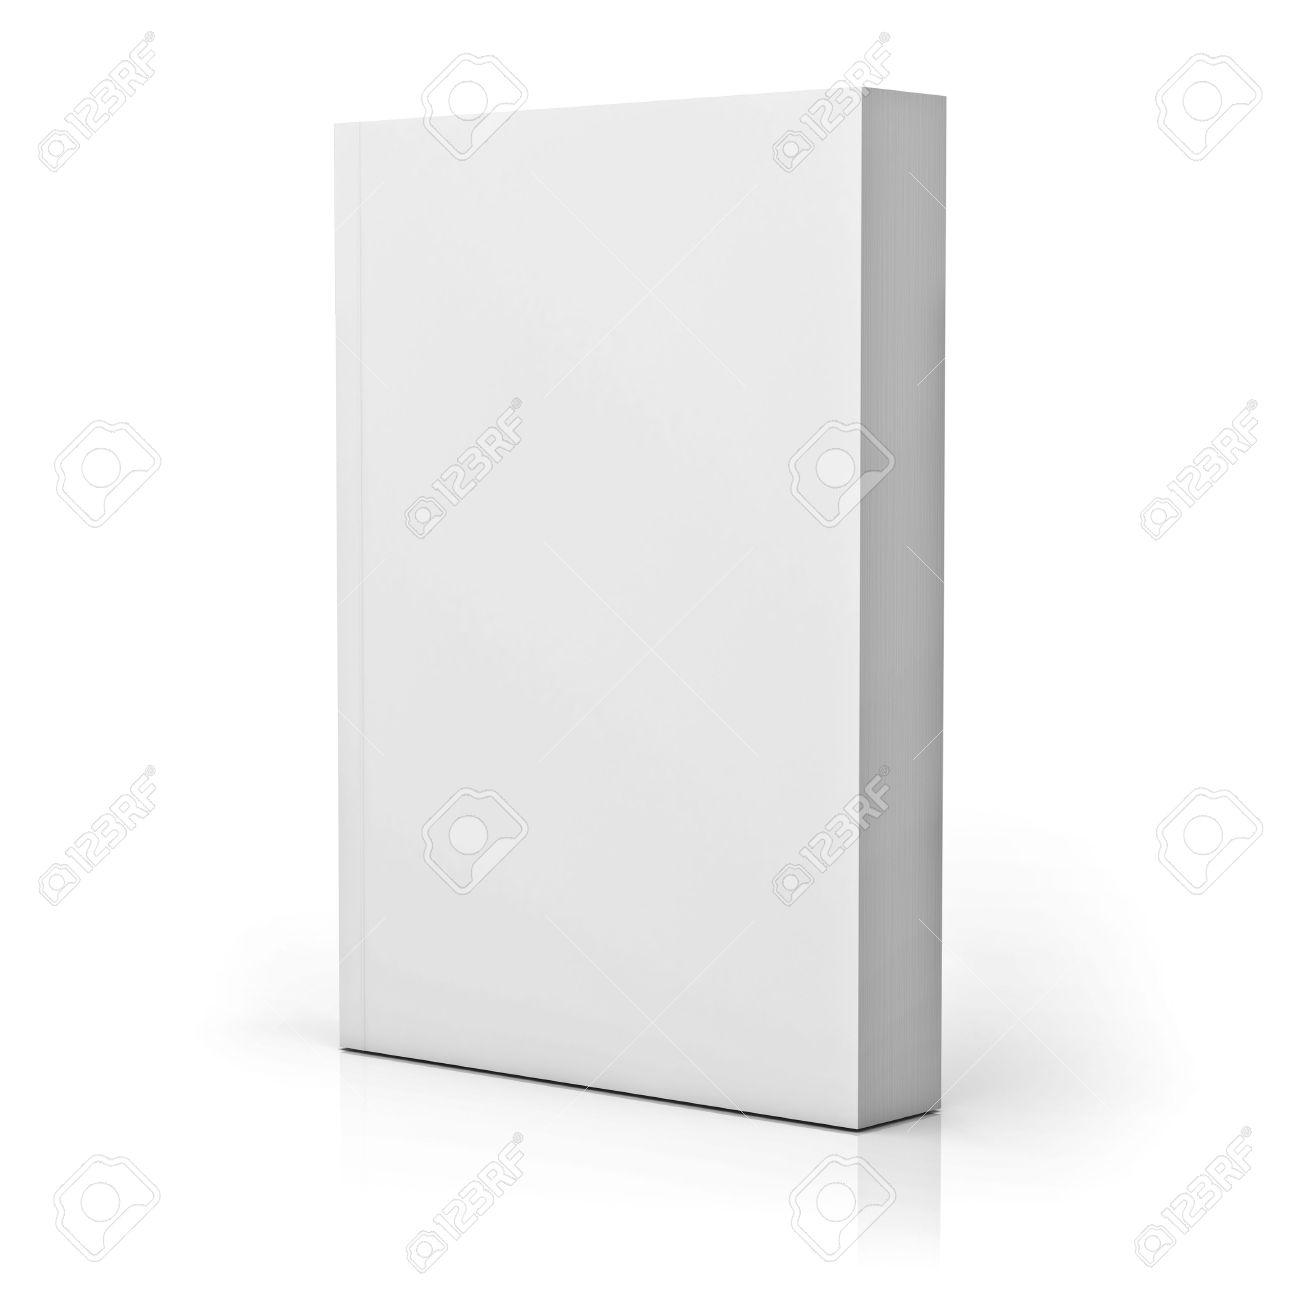 Blank paperback book cover isolated over white background with reflection. 3D rendering. Banque d'images - 54632795